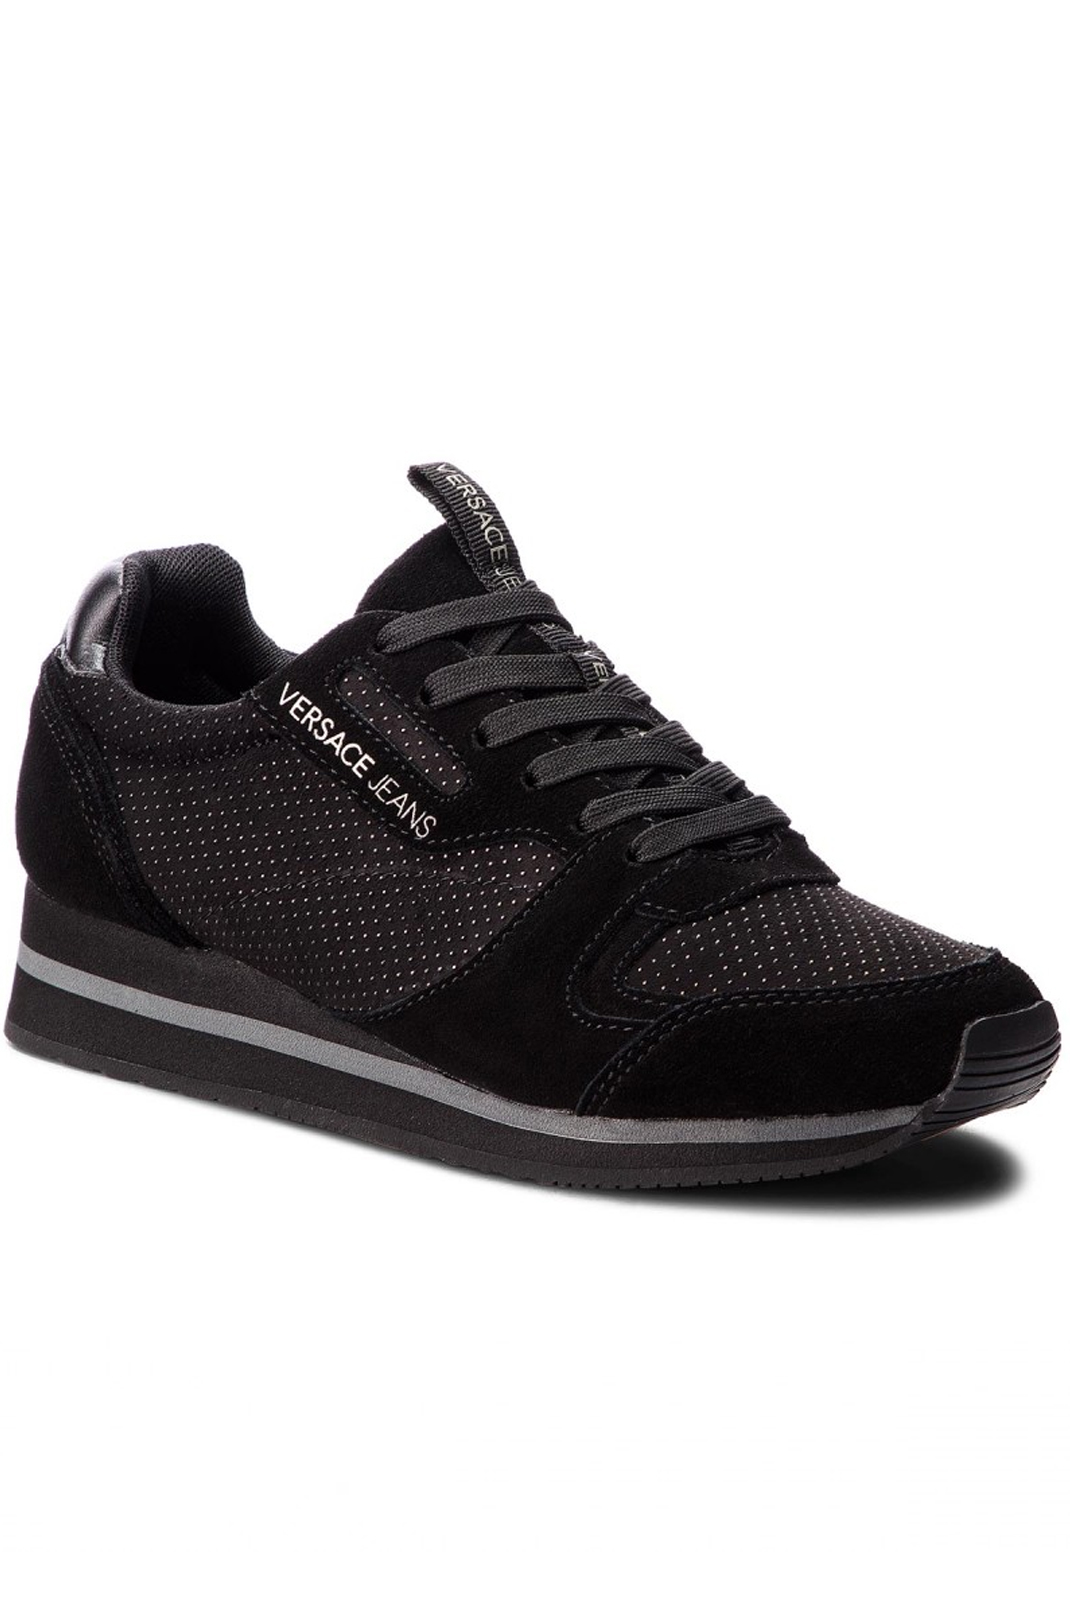 Baskets / Sneakers  Versace Jeans VSBSA2 899 black